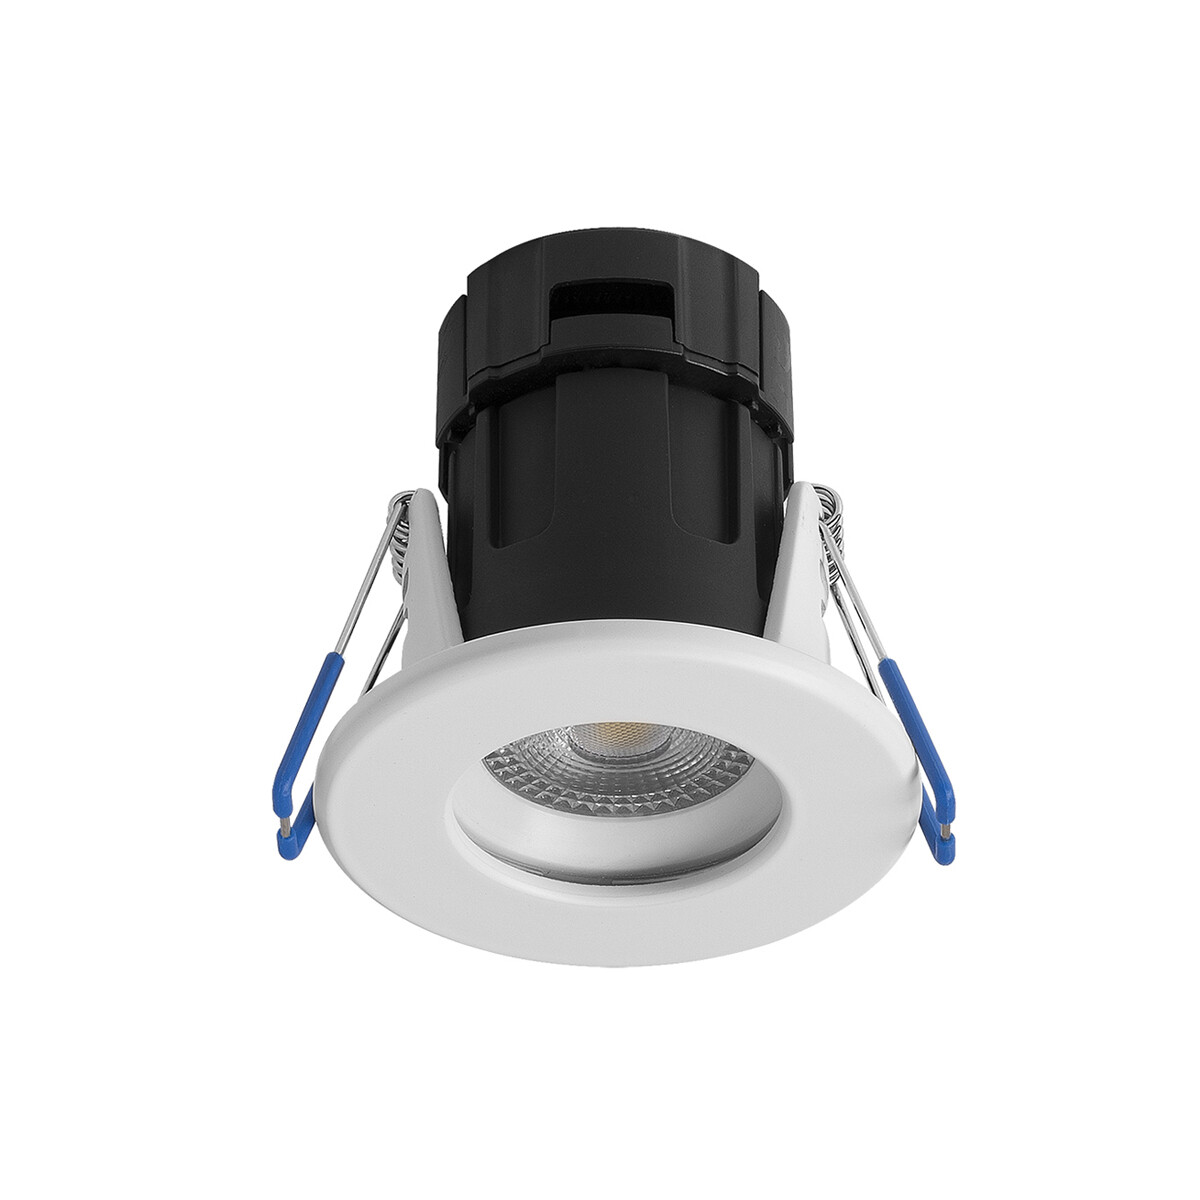 AKAN S IP65 10W LED Recessed Spot-light dimmable